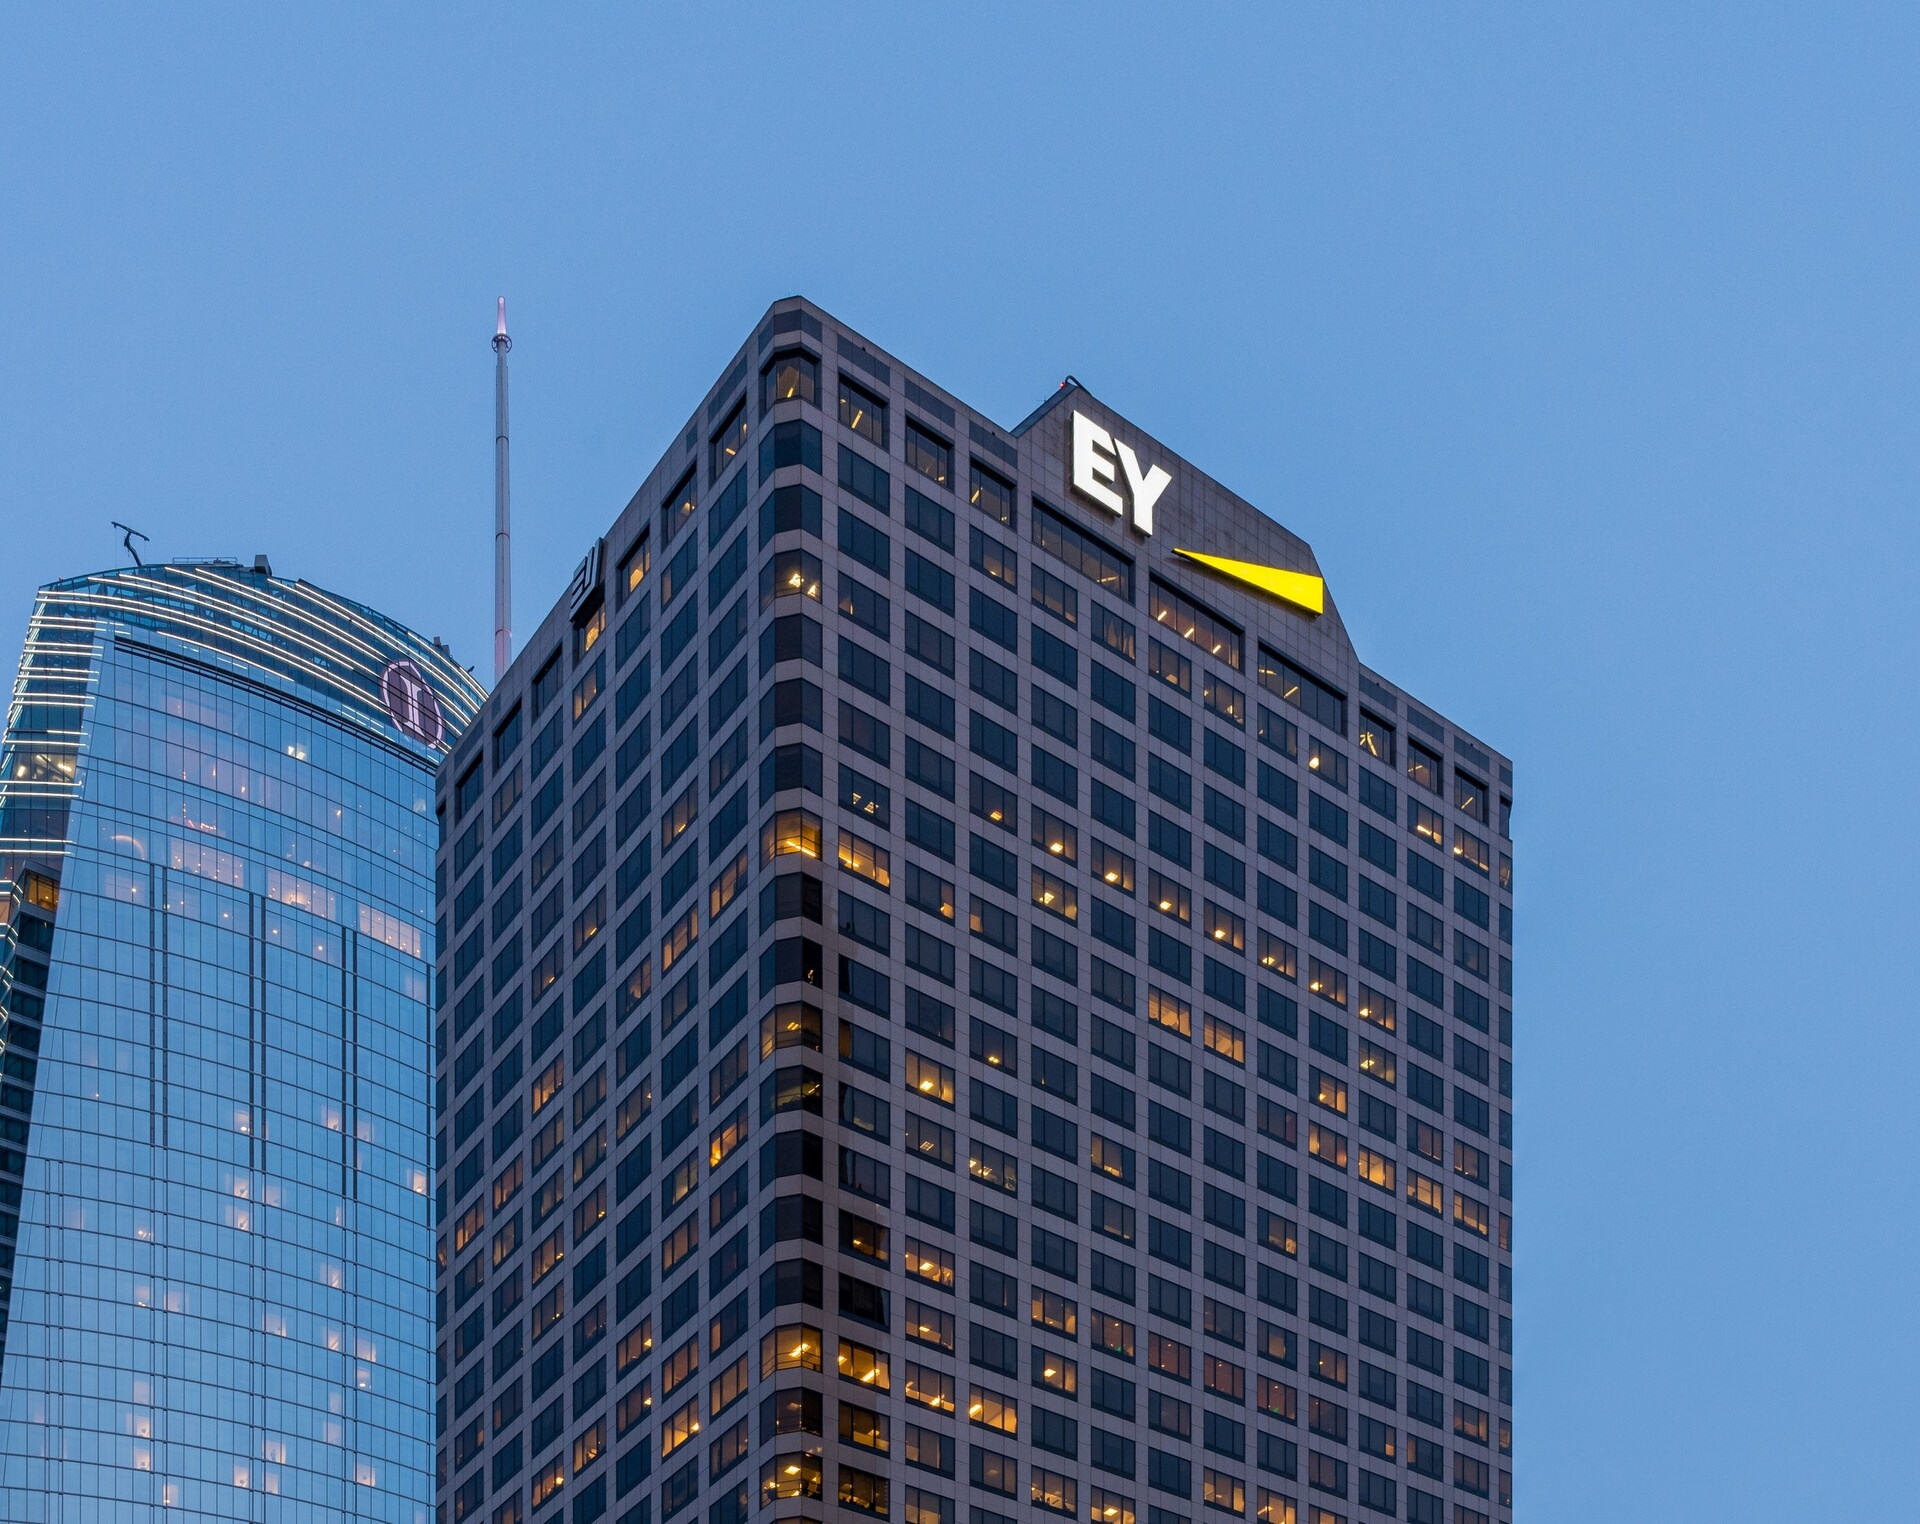 A tall building that is curved and has a lot of glass on it and there is an EY logo at the top of it